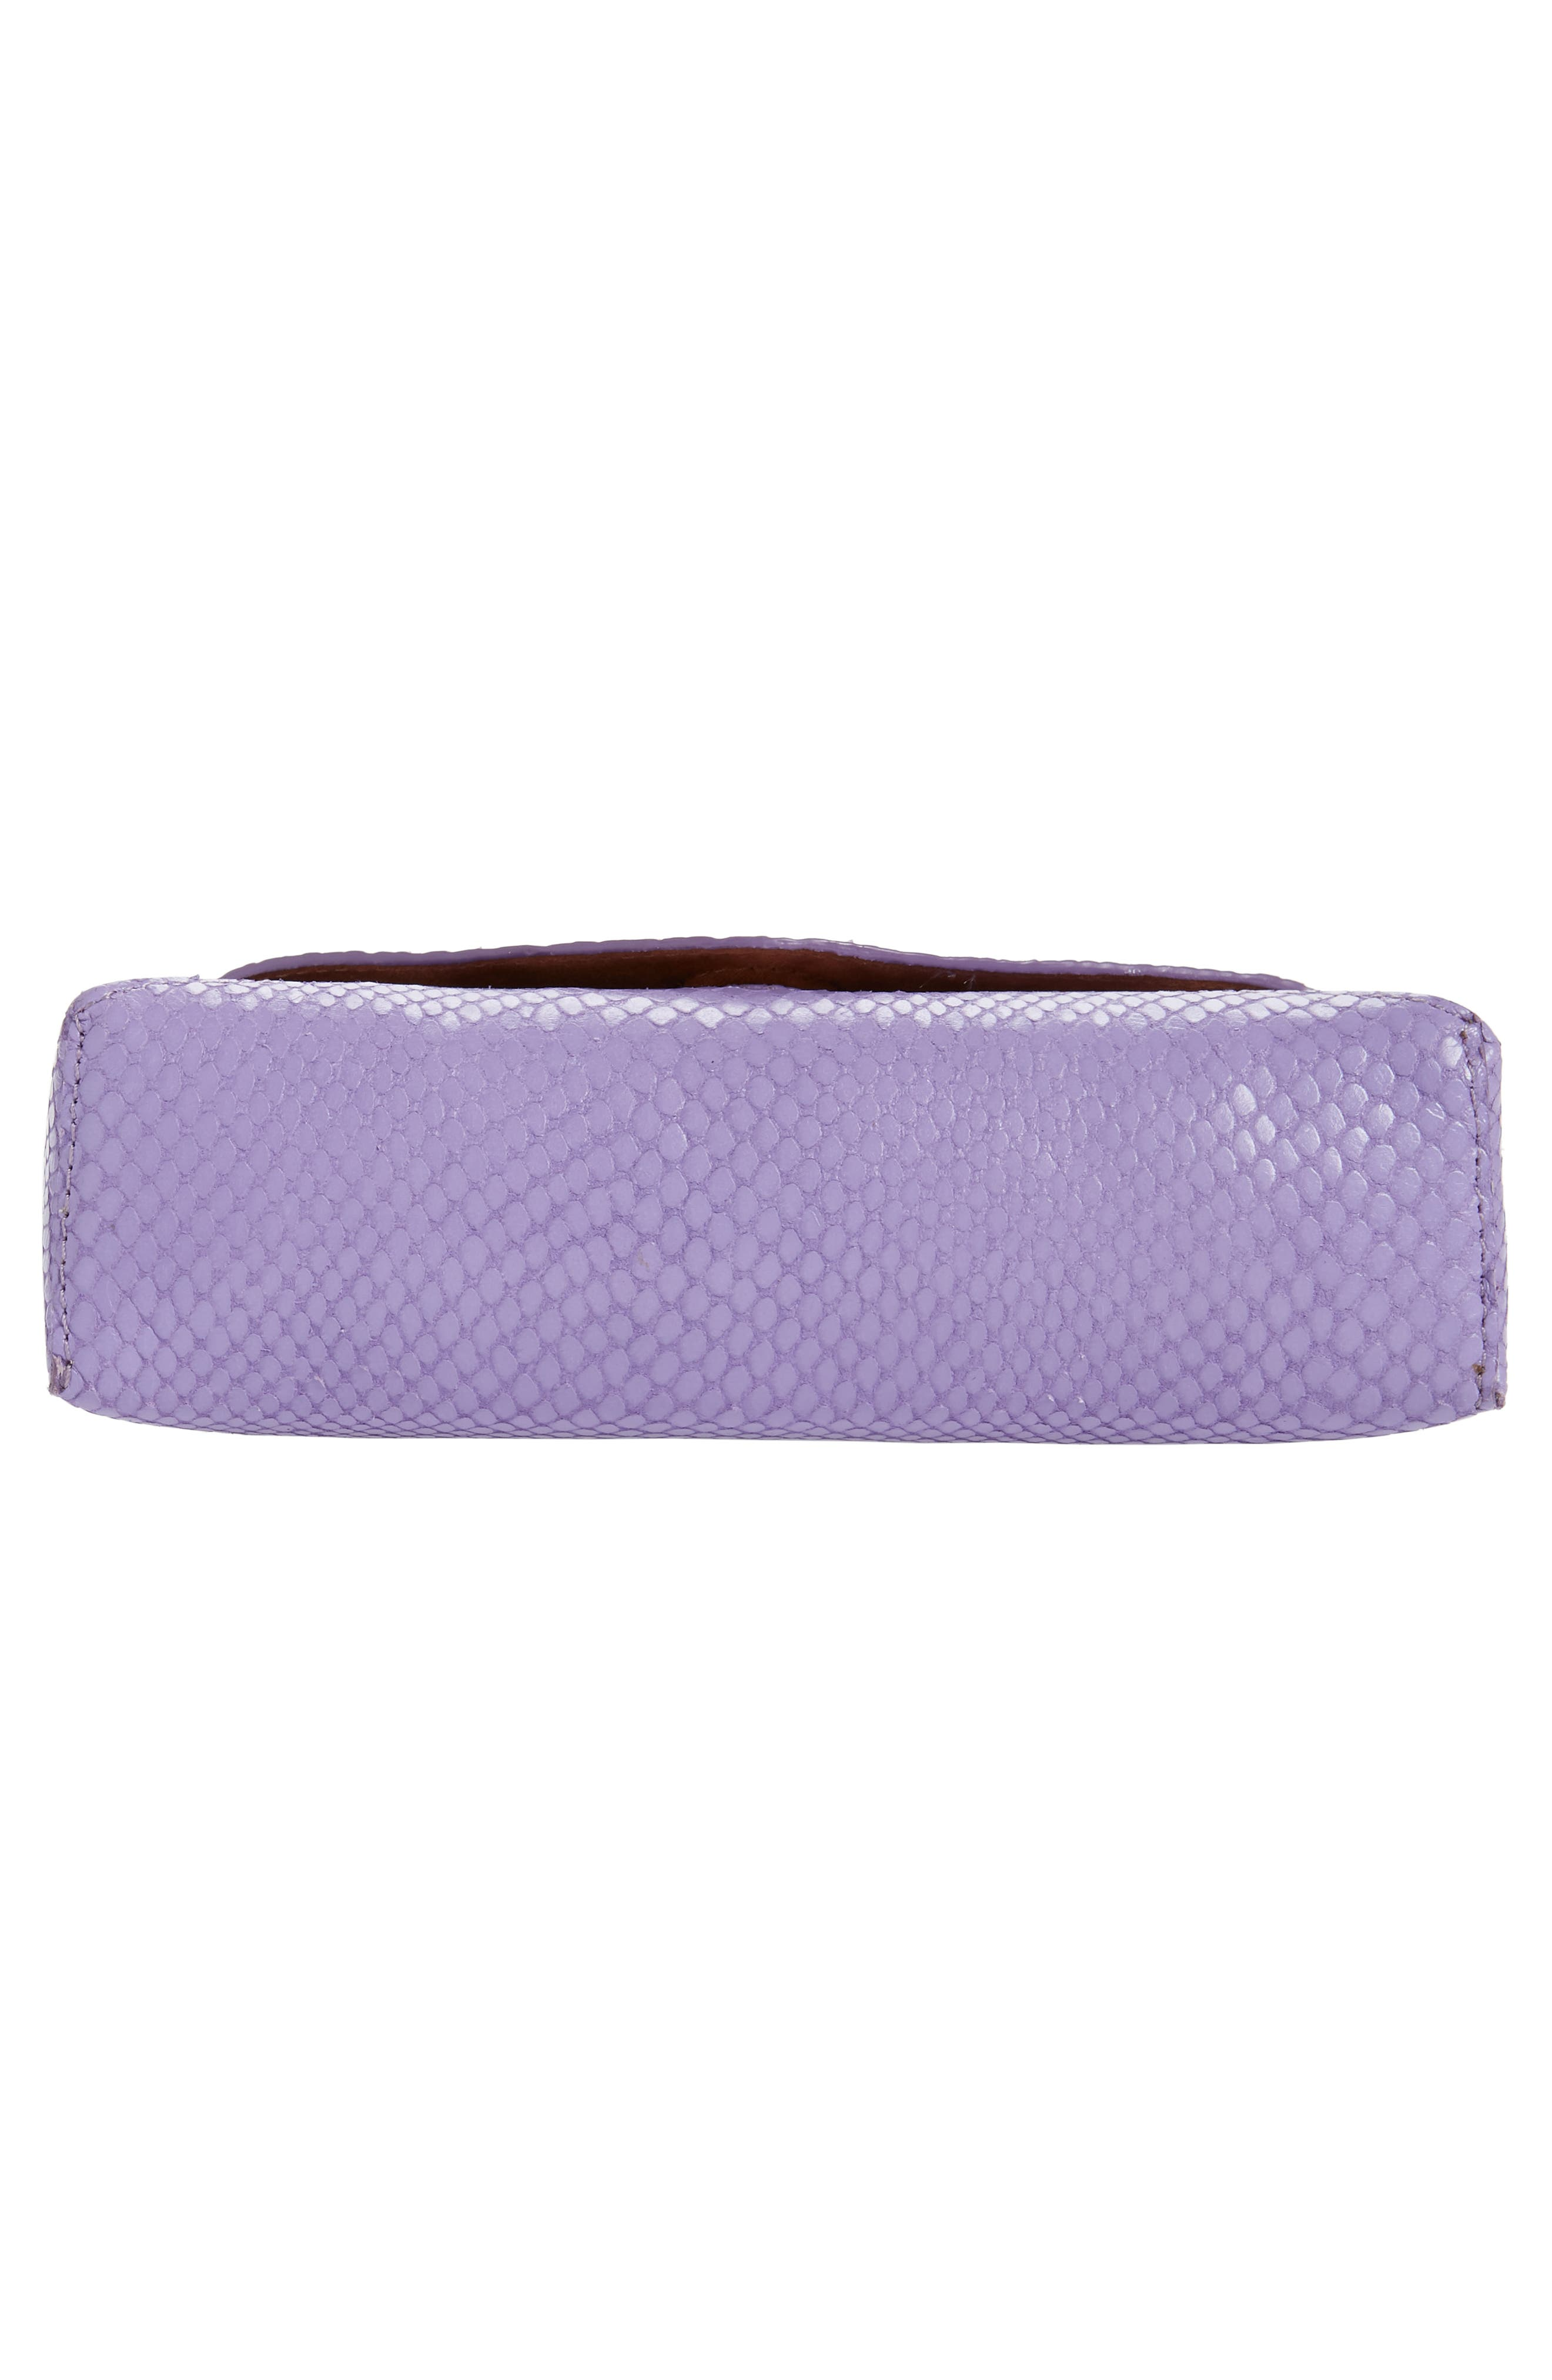 ,                             Small Python Embossed Leather Envelope Clutch,                             Alternate thumbnail 6, color,                             LILAC